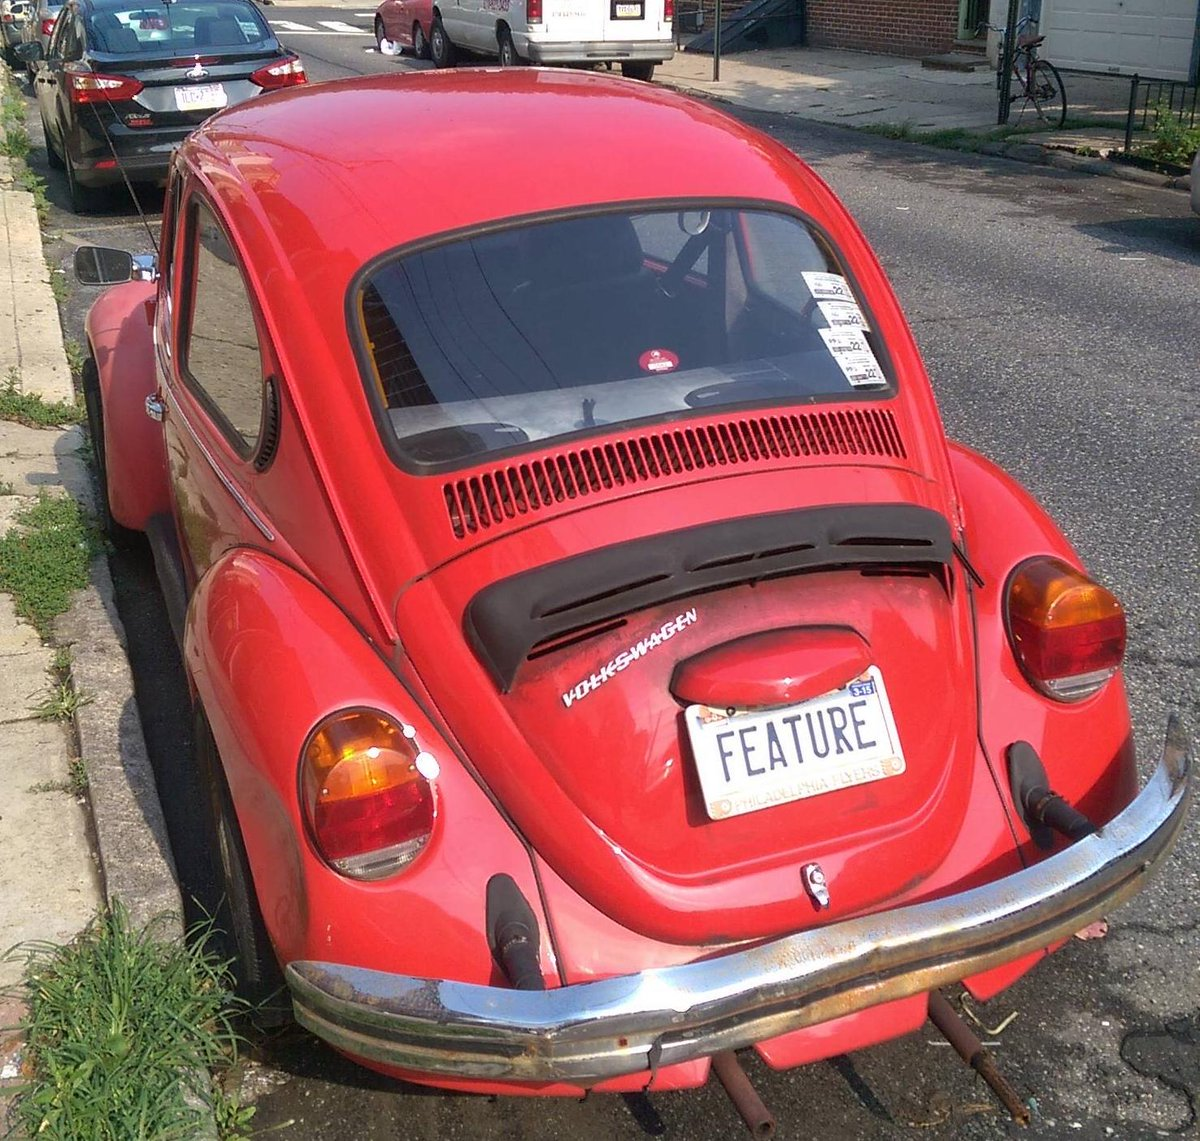 It's not a bug… http://t.co/VjRJSRRN9n